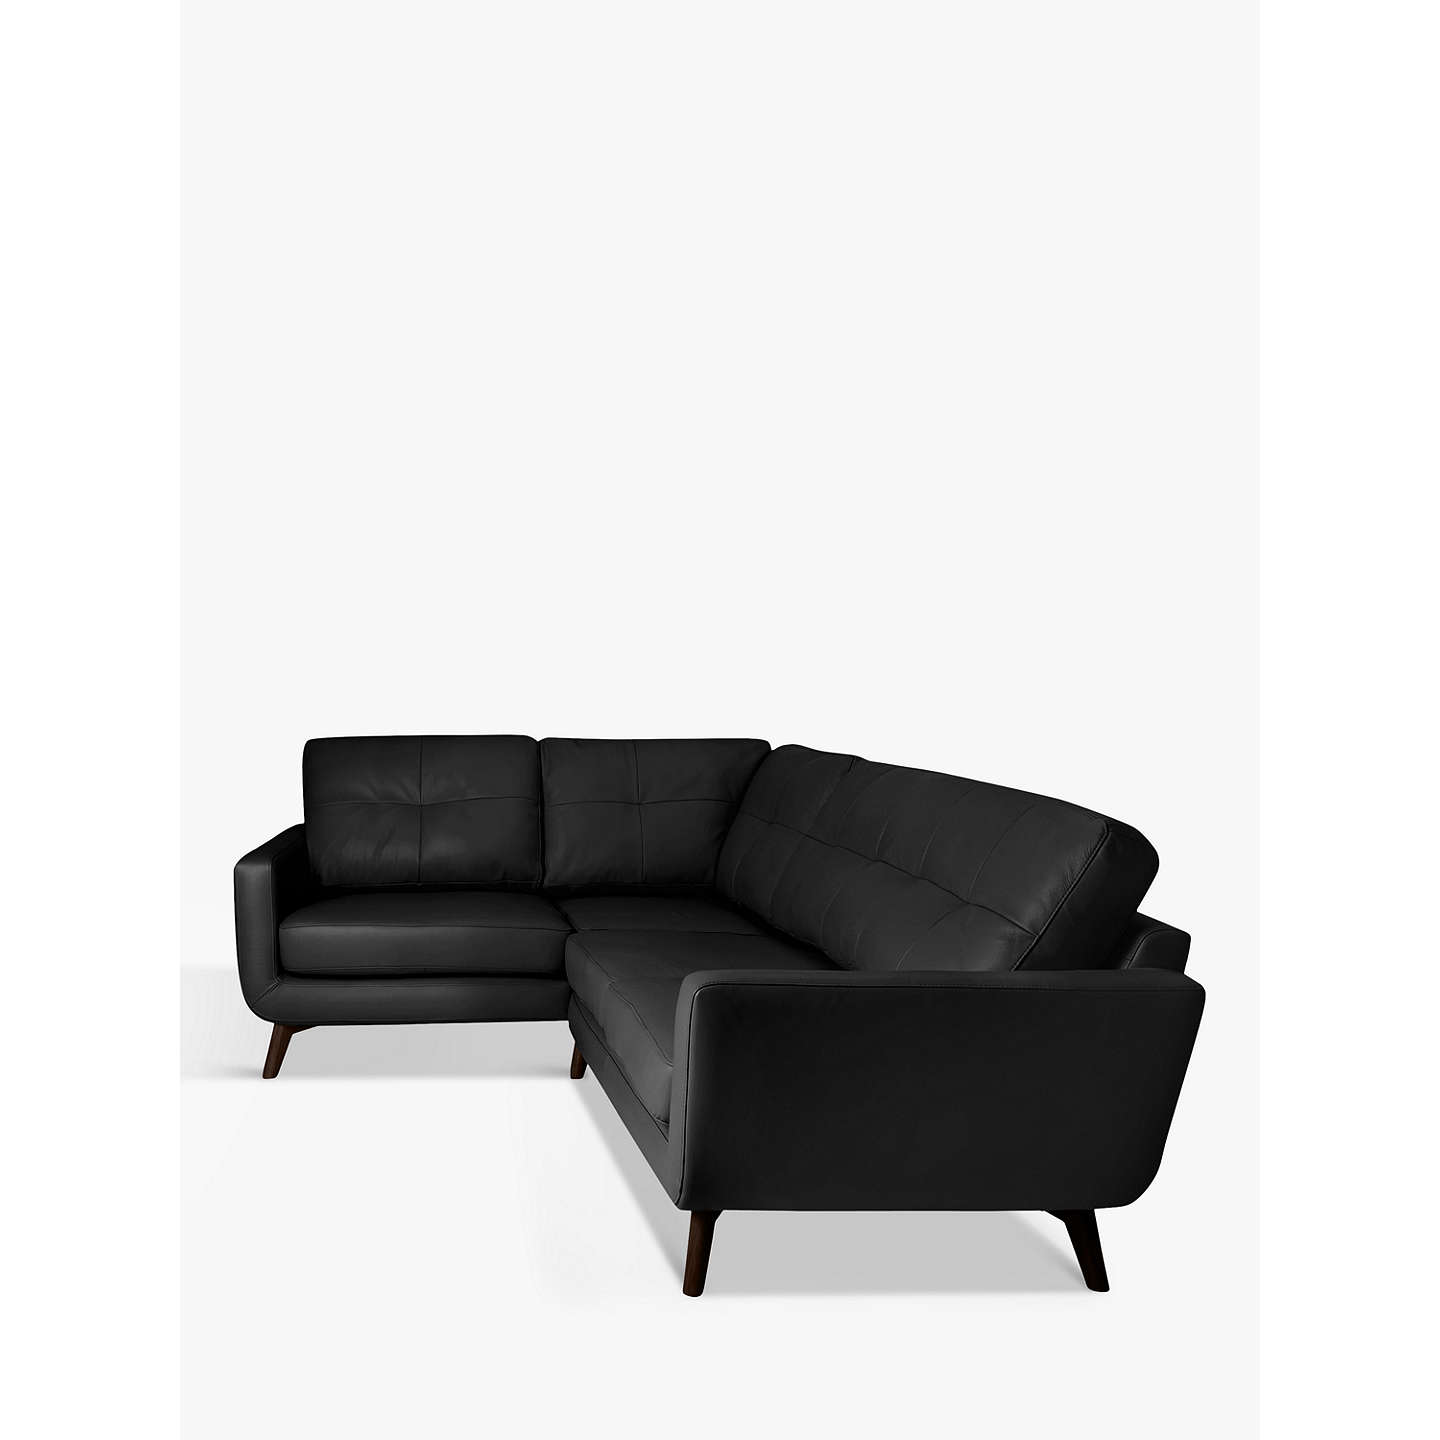 BuyJohn Lewis Barbican Leather LHF Corner End Sofa, Dark Leg, Contempo Black Online at johnlewis.com